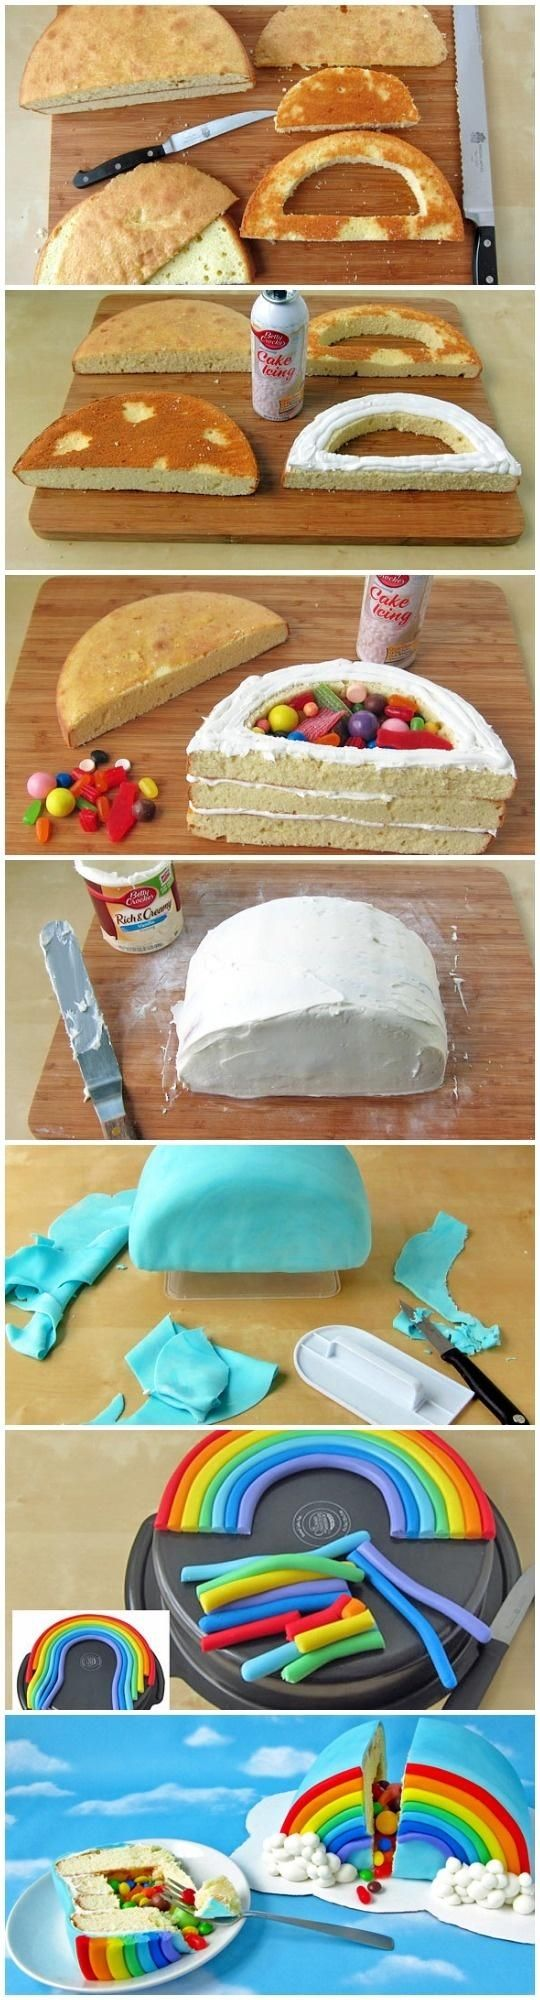 DIY Cake Pictures, Photos, and Images for Facebook, Tumblr, Pinterest, and Twitter